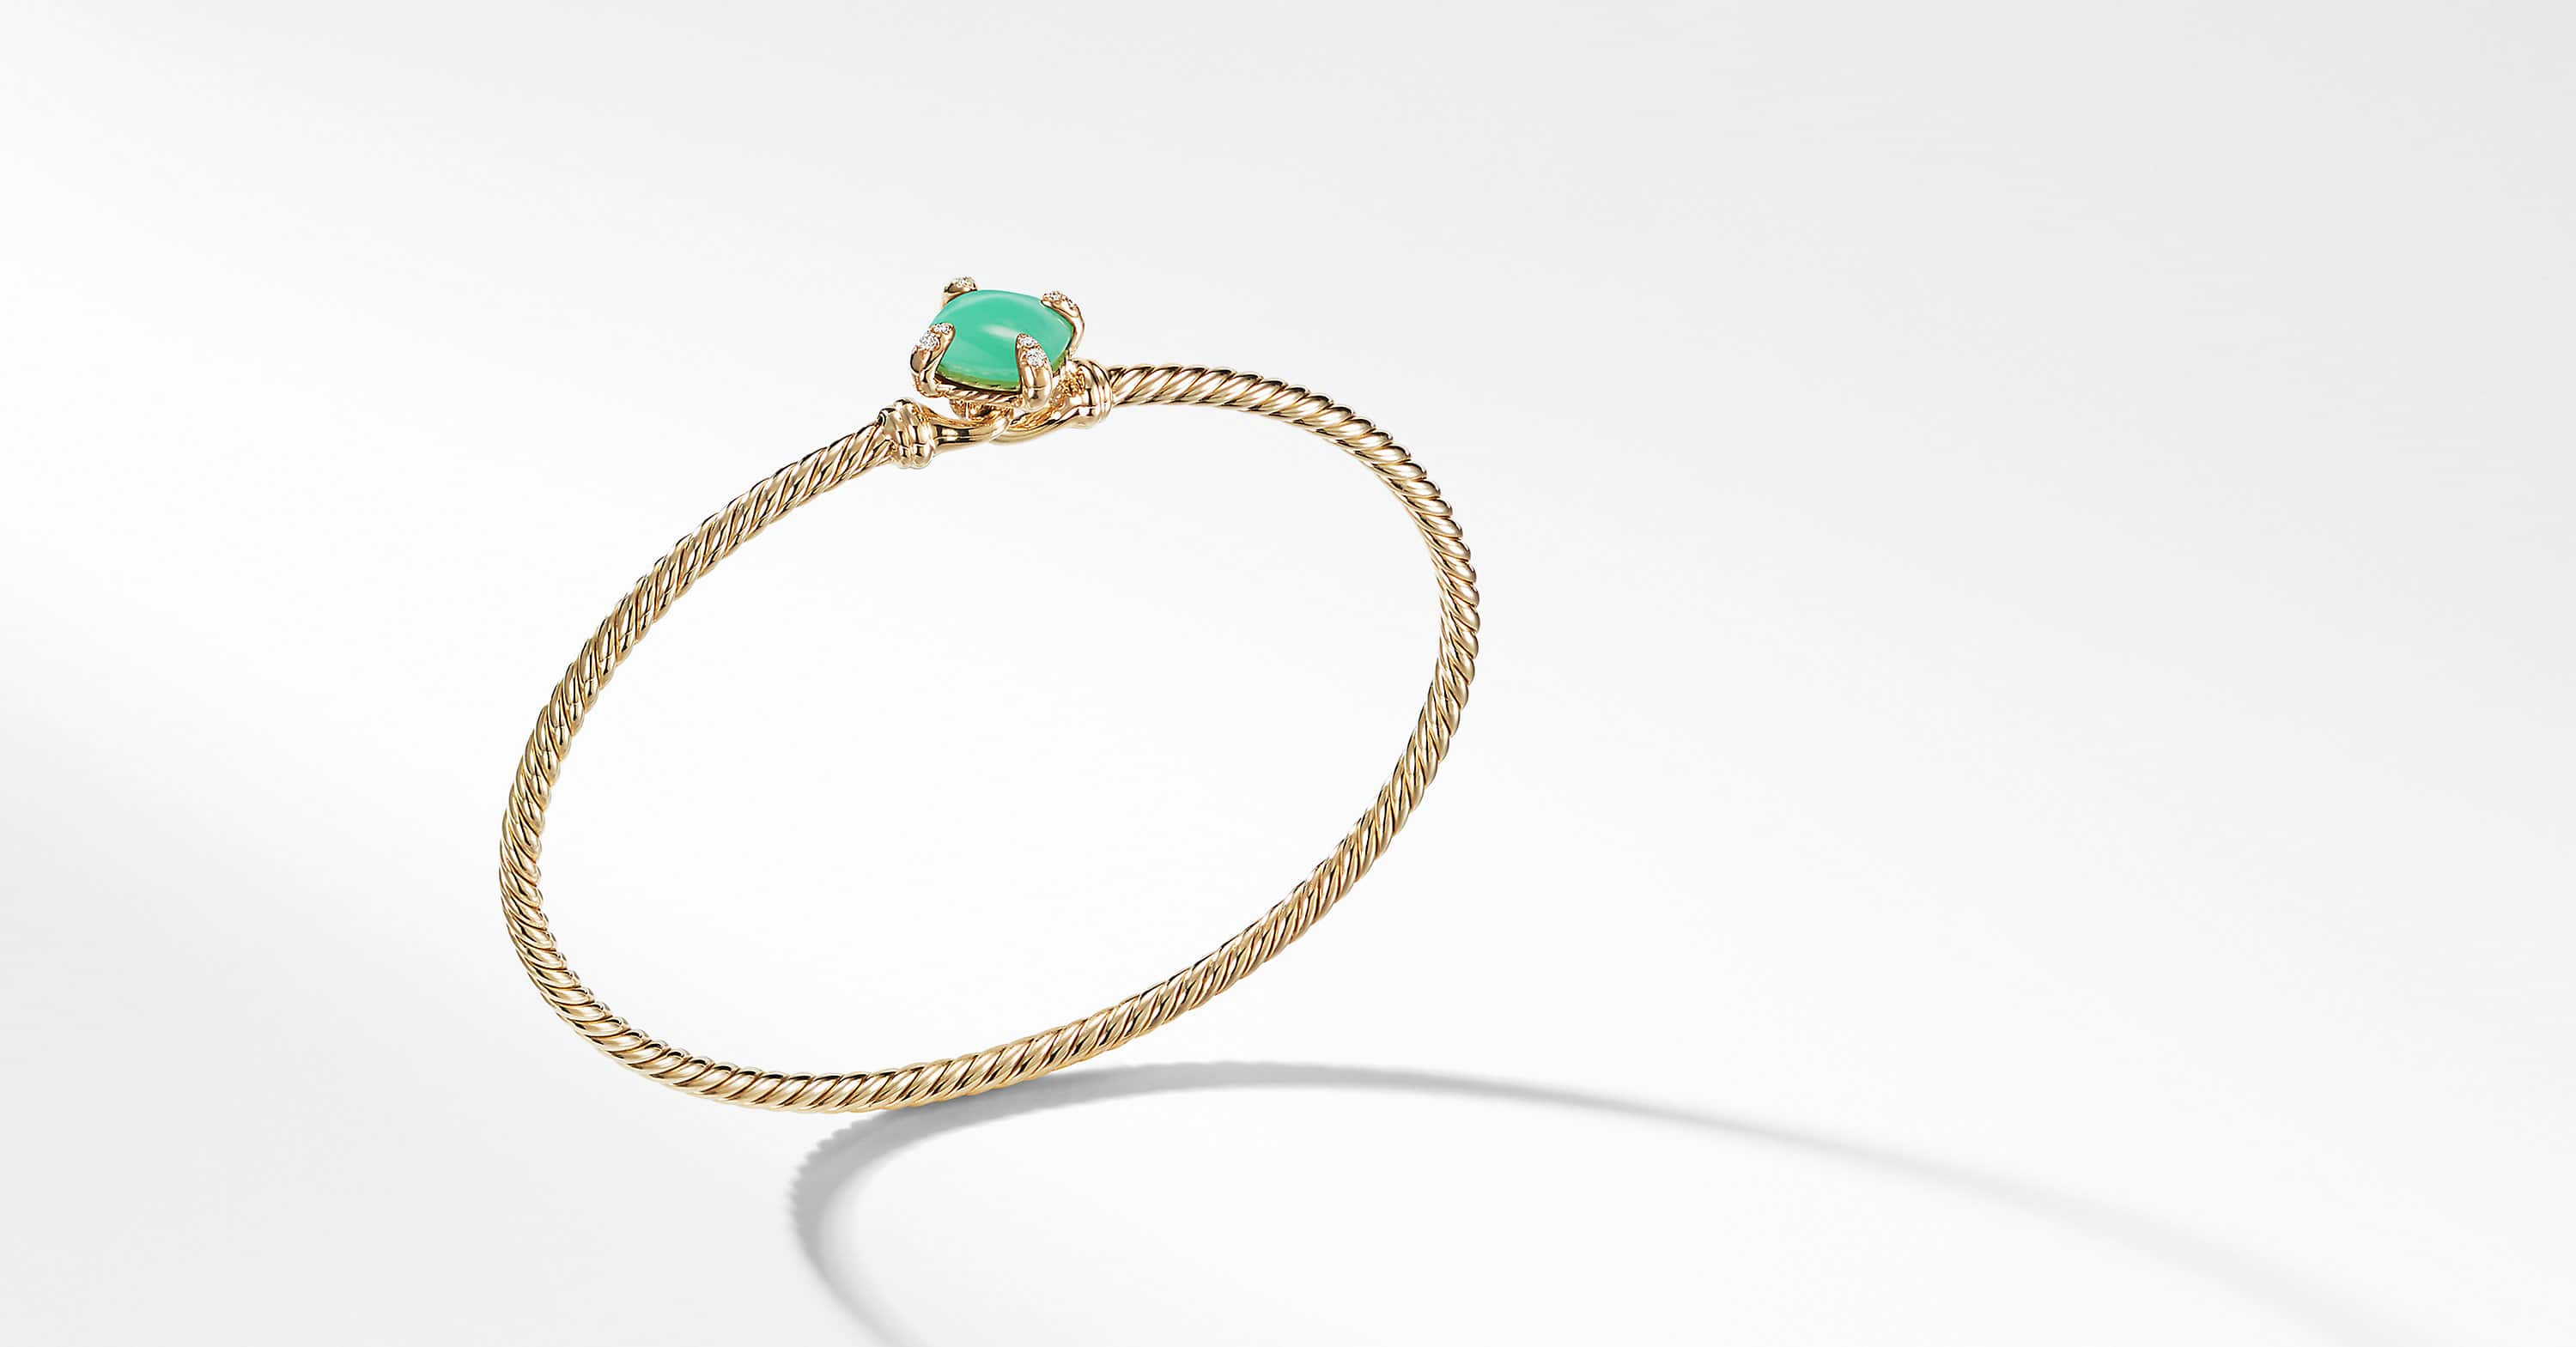 Chatelaine Bracelet with Diamonds in 18K Gold, 8mm